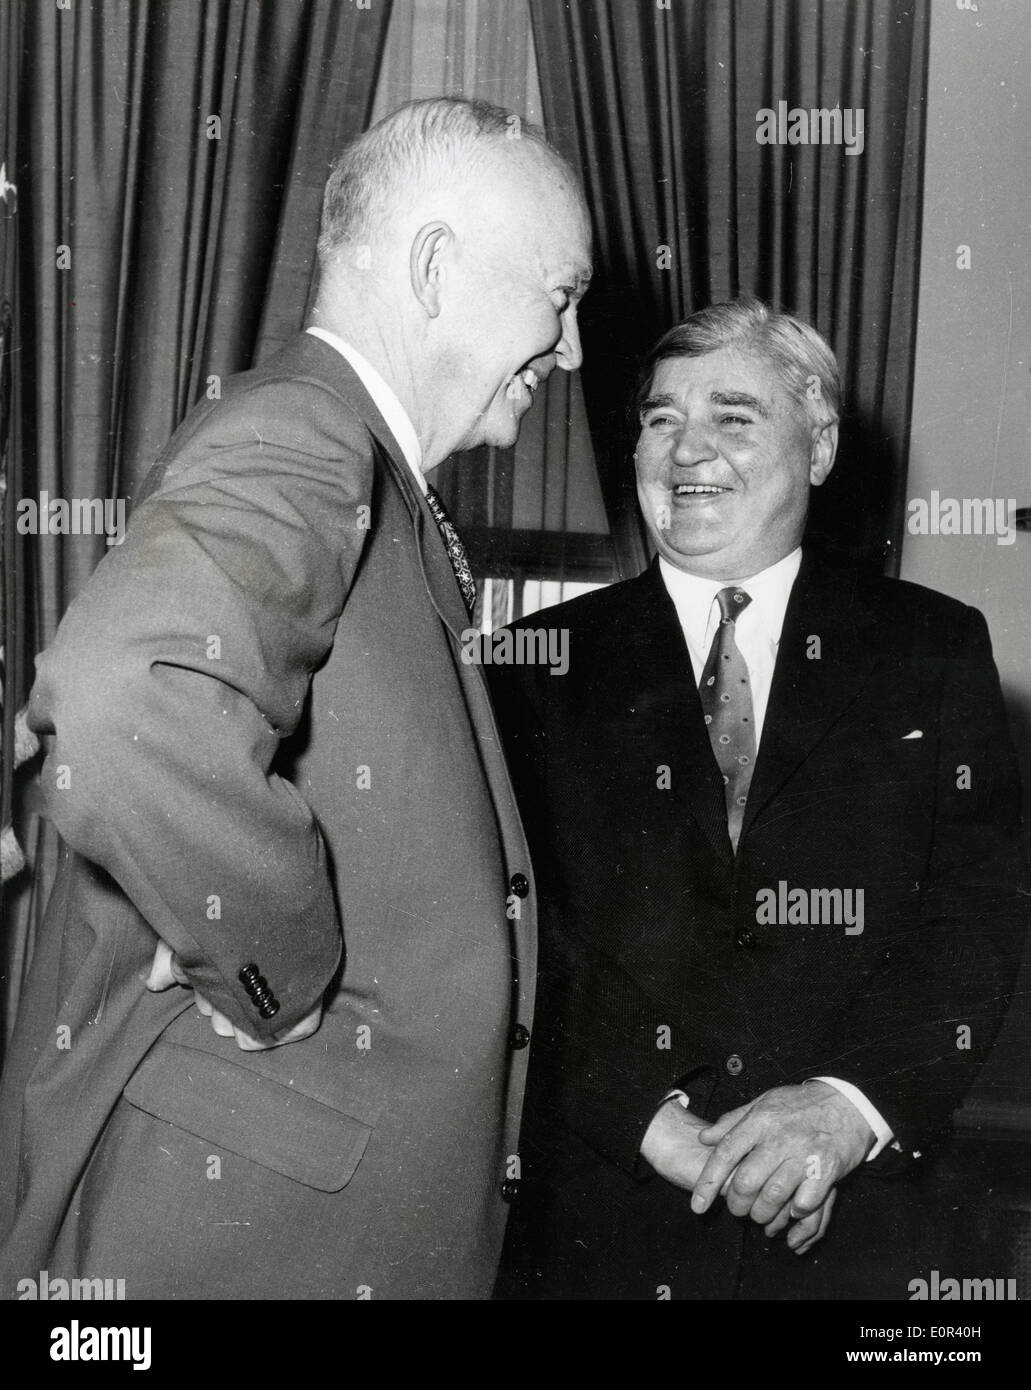 Aneurin Bevan shares a laugh with President Eisenhower - Stock Image